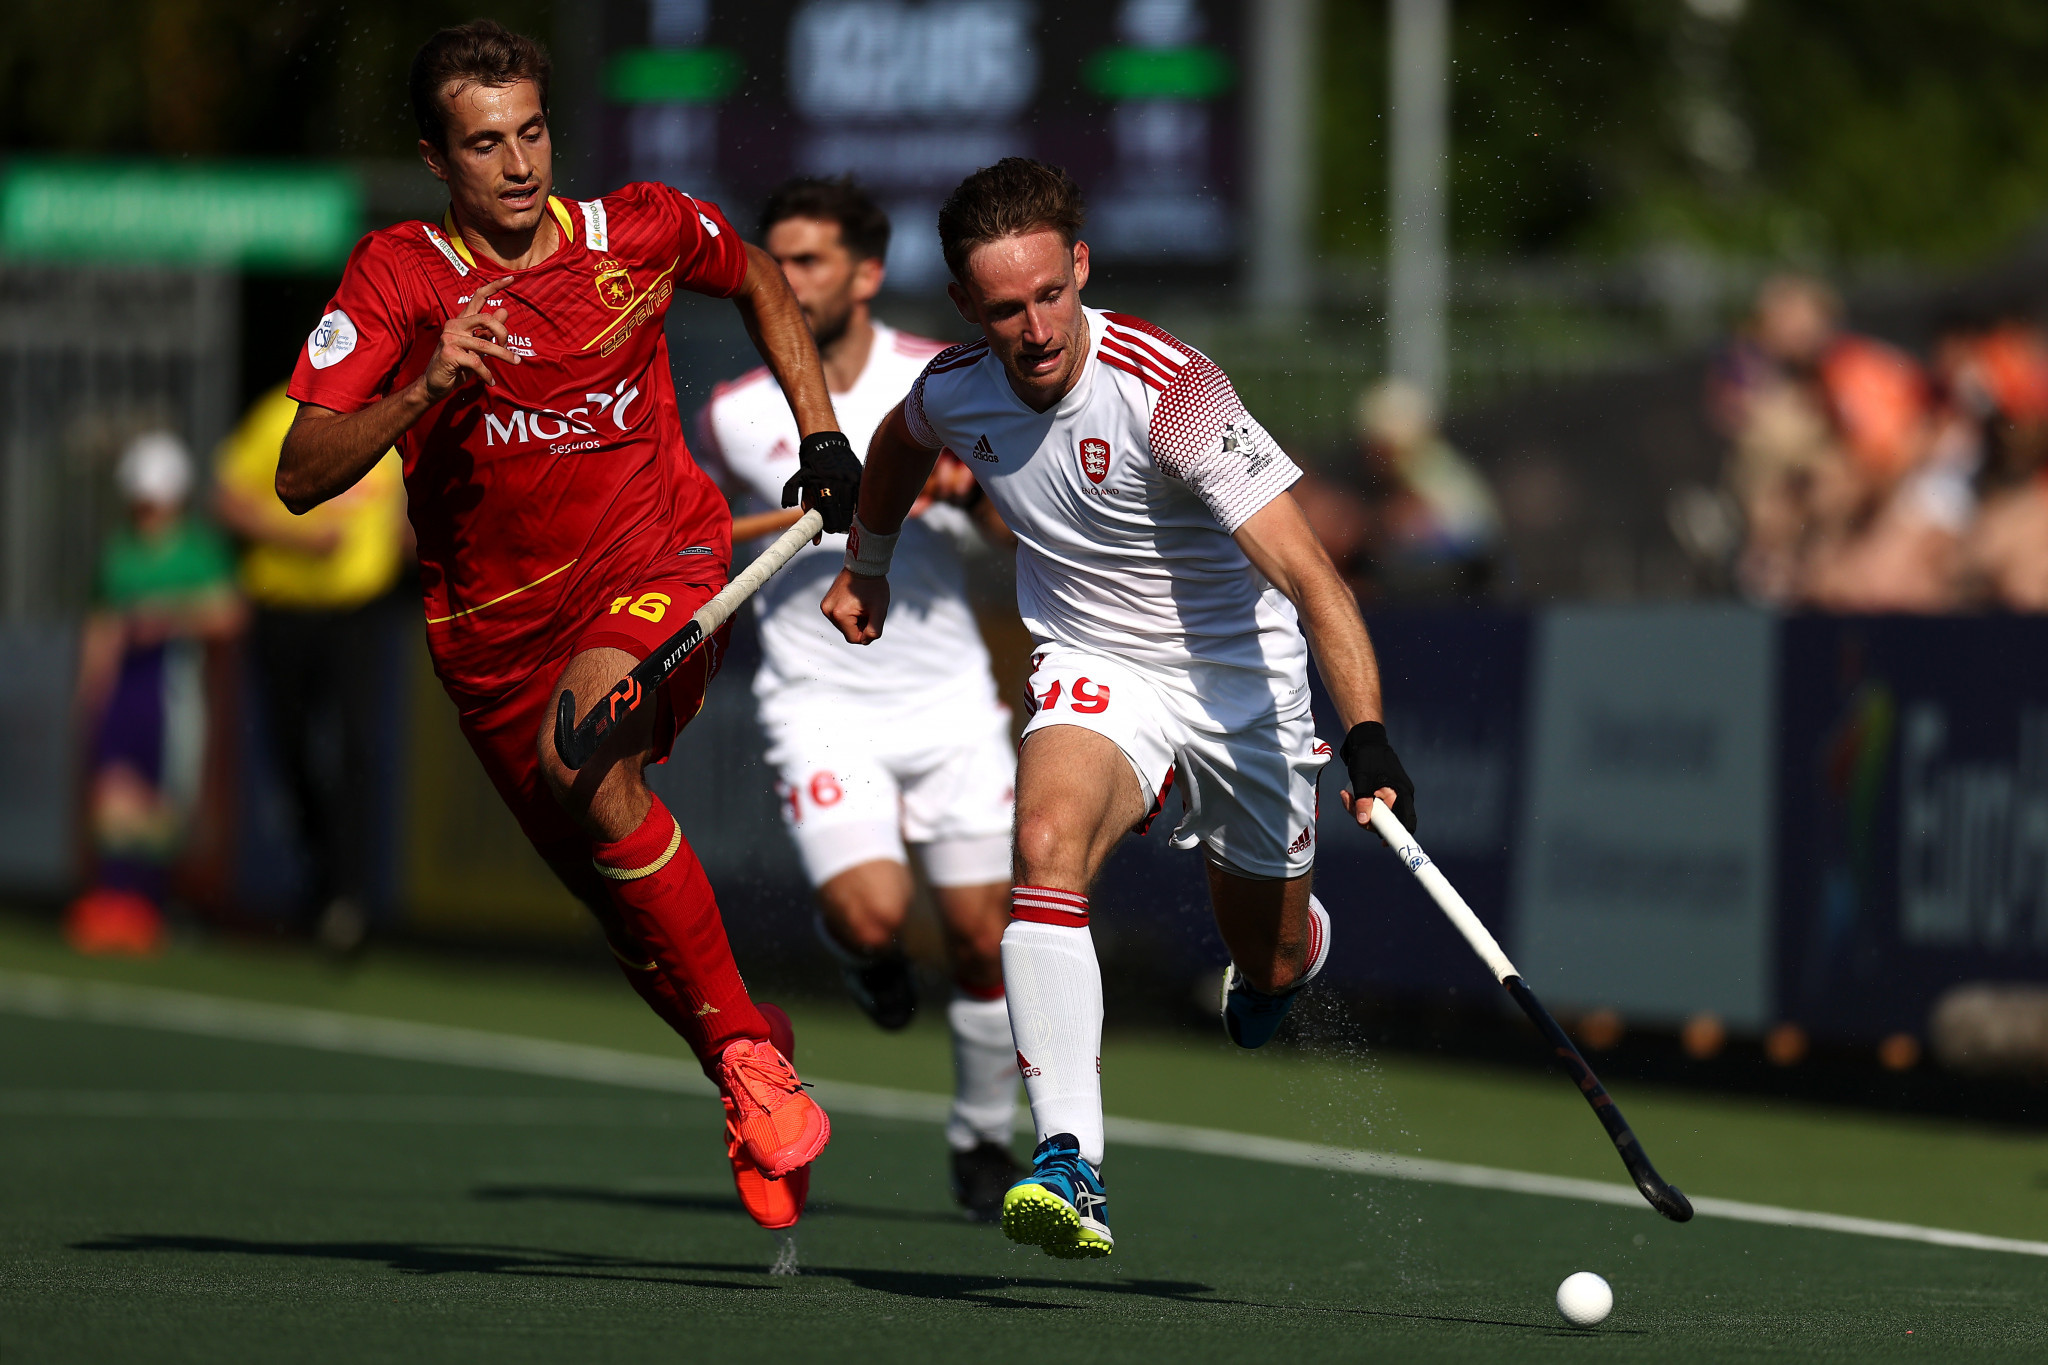 England and The Netherlands top pools as goals fly in at men's EuroHockey Championship